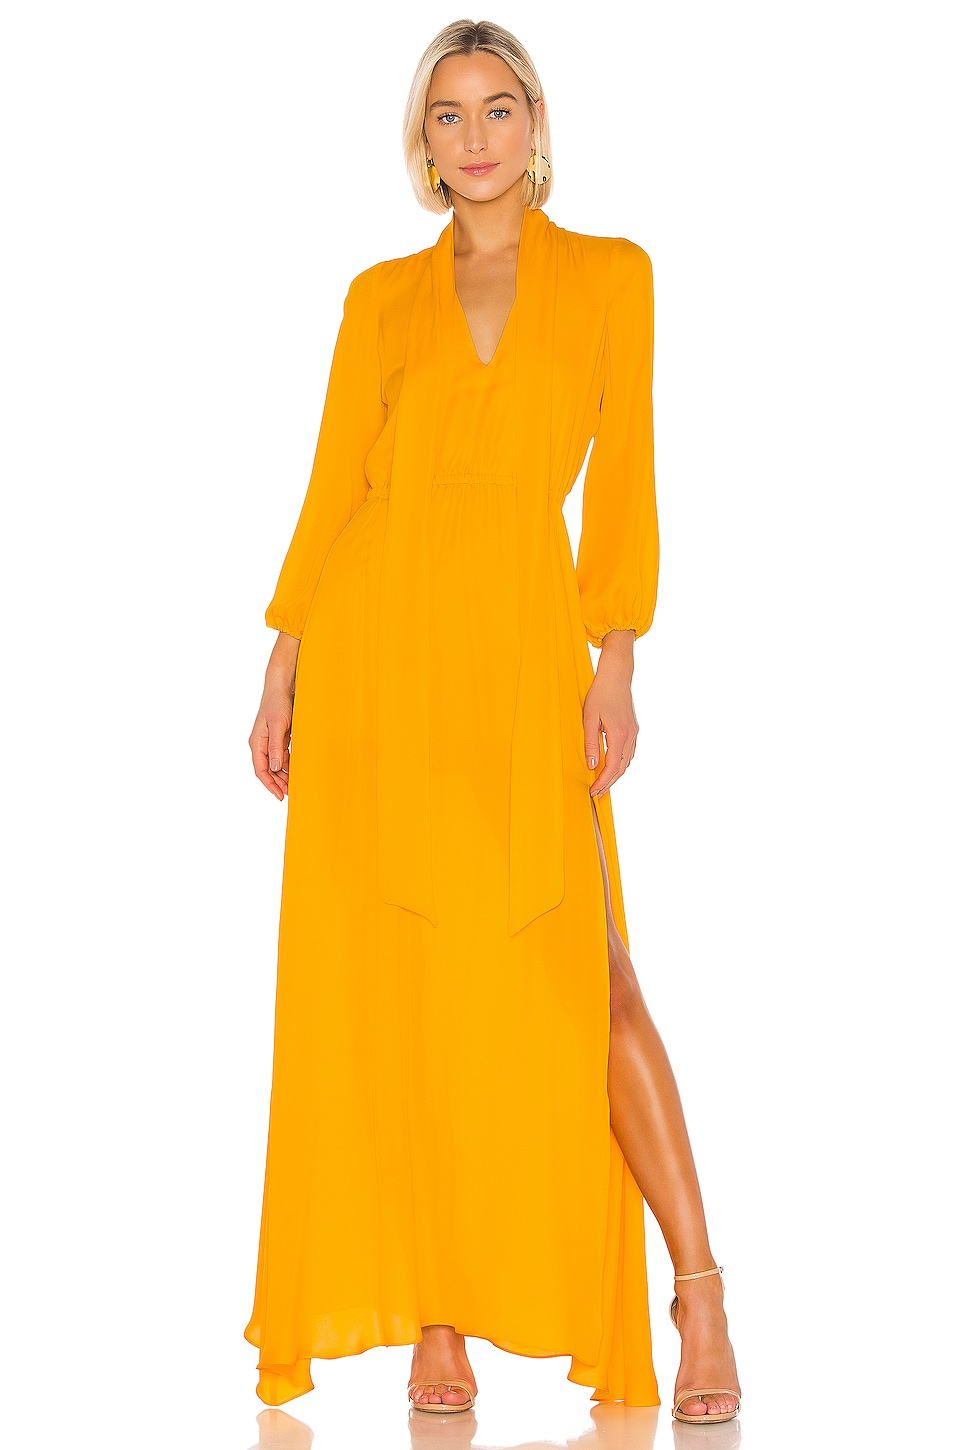 Cynthia Rowley Ella Maxi Dress in Marigold